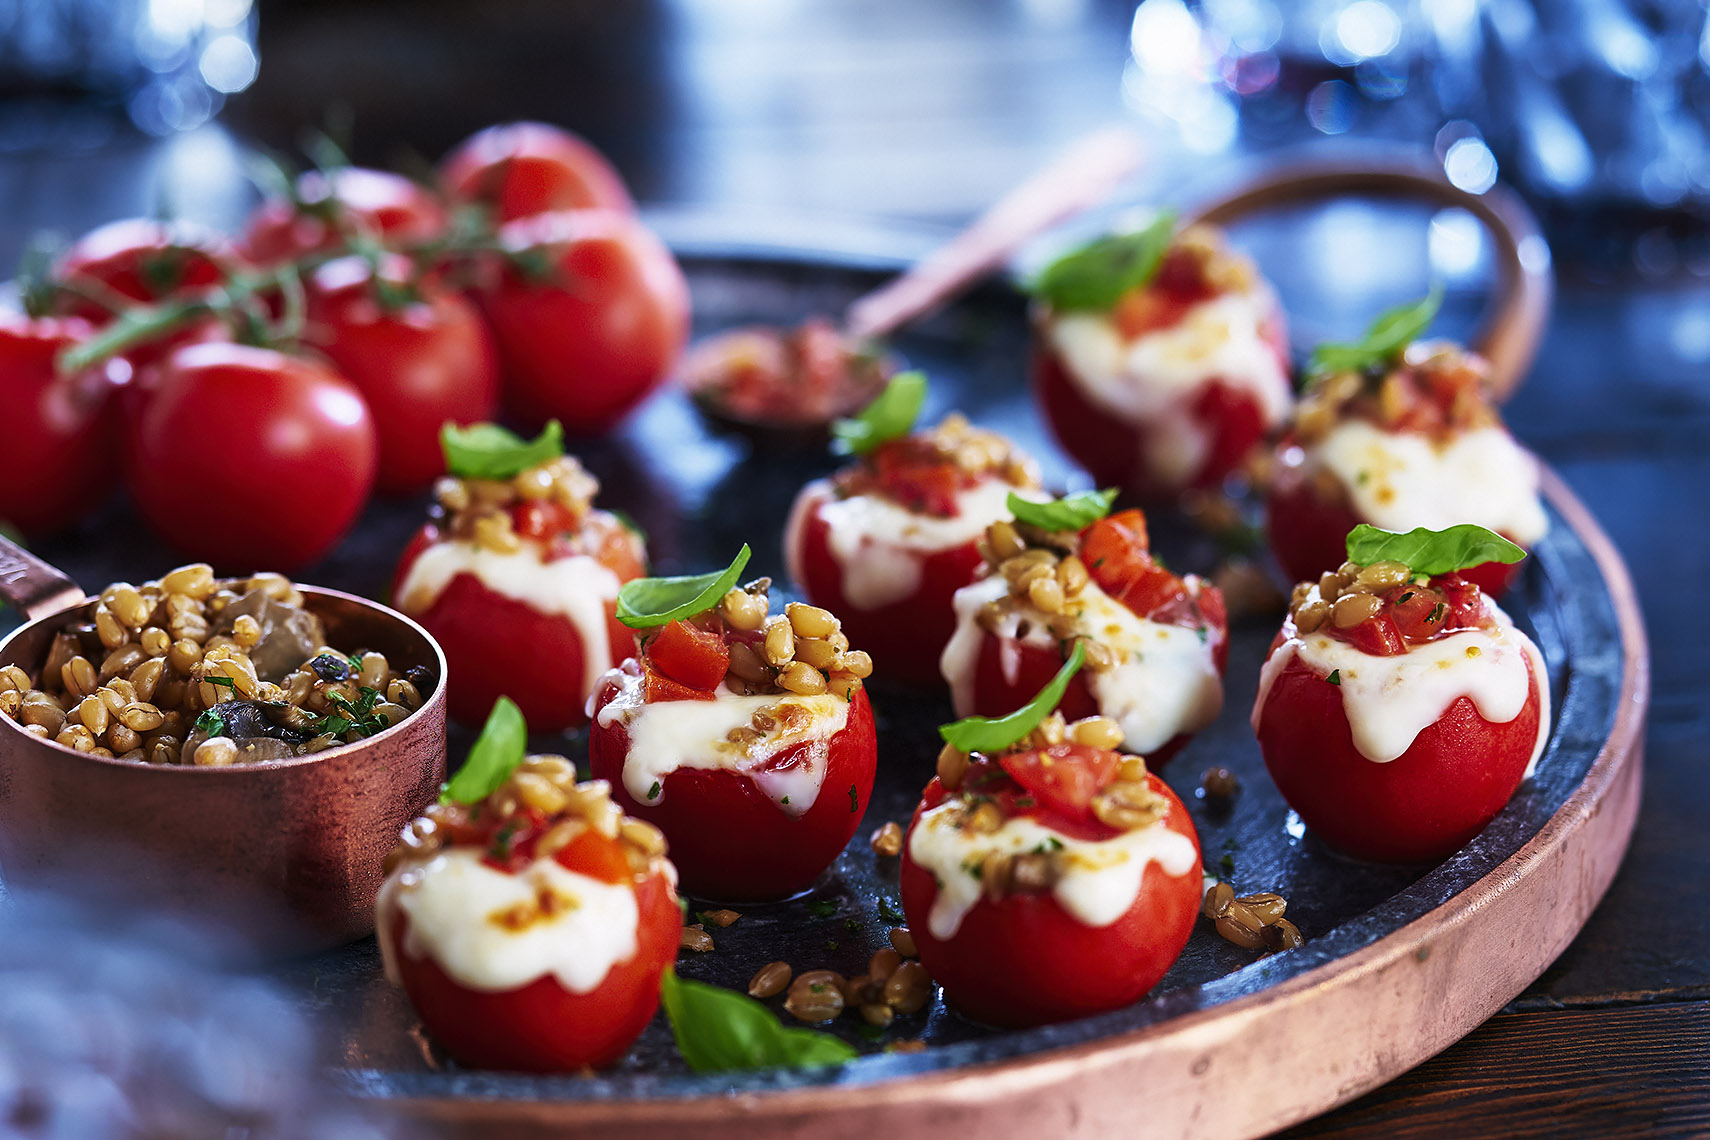 Stuffed_Tomatoes